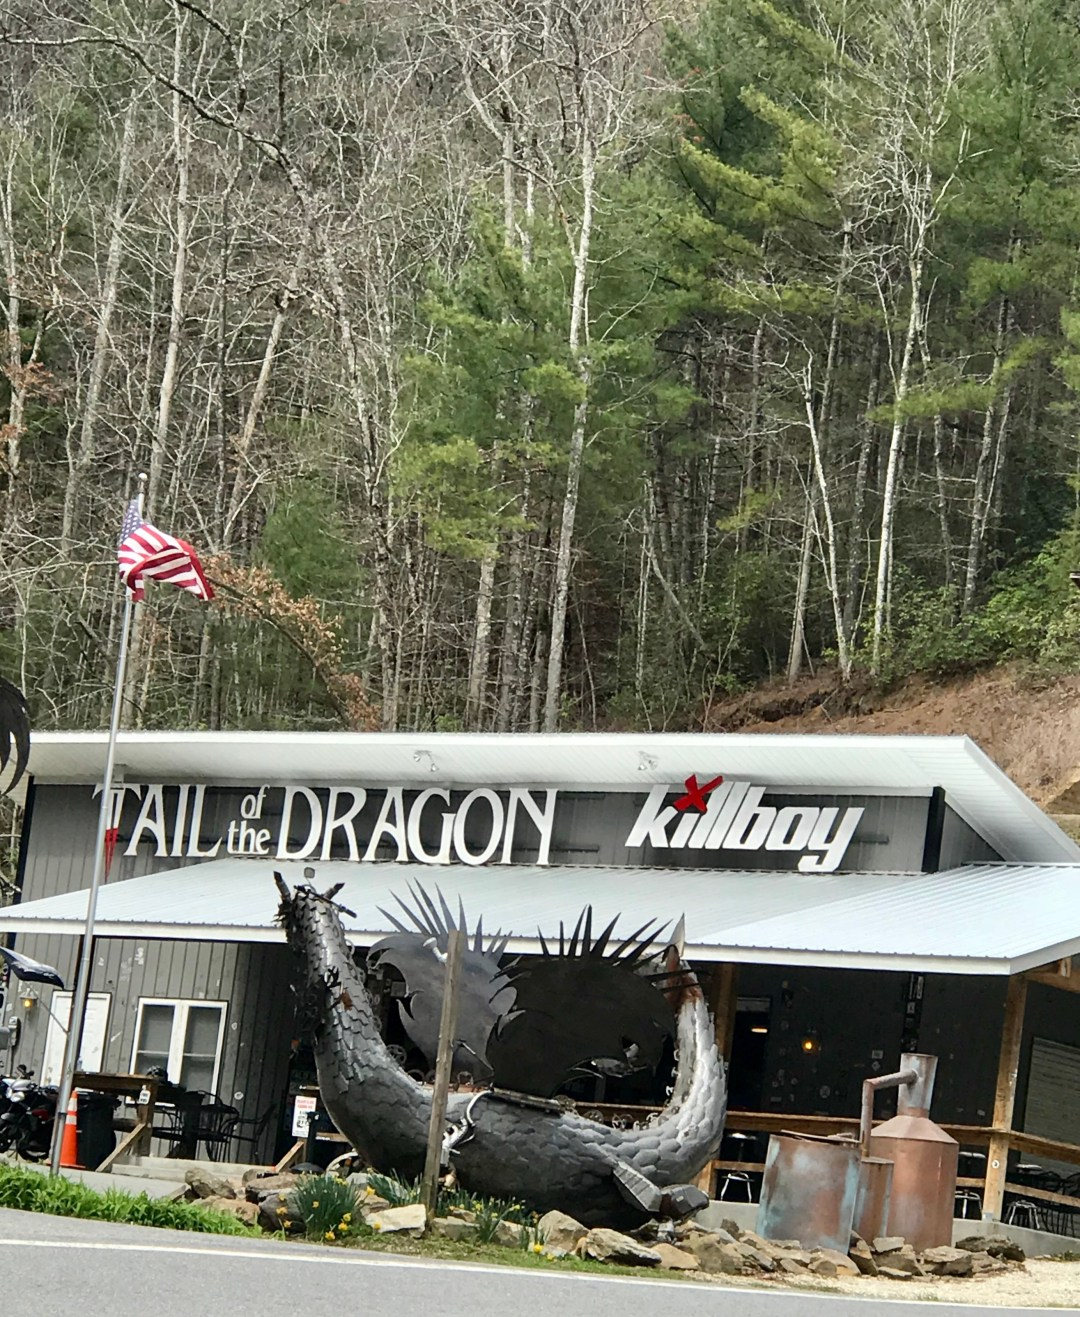 The tail of the dragon